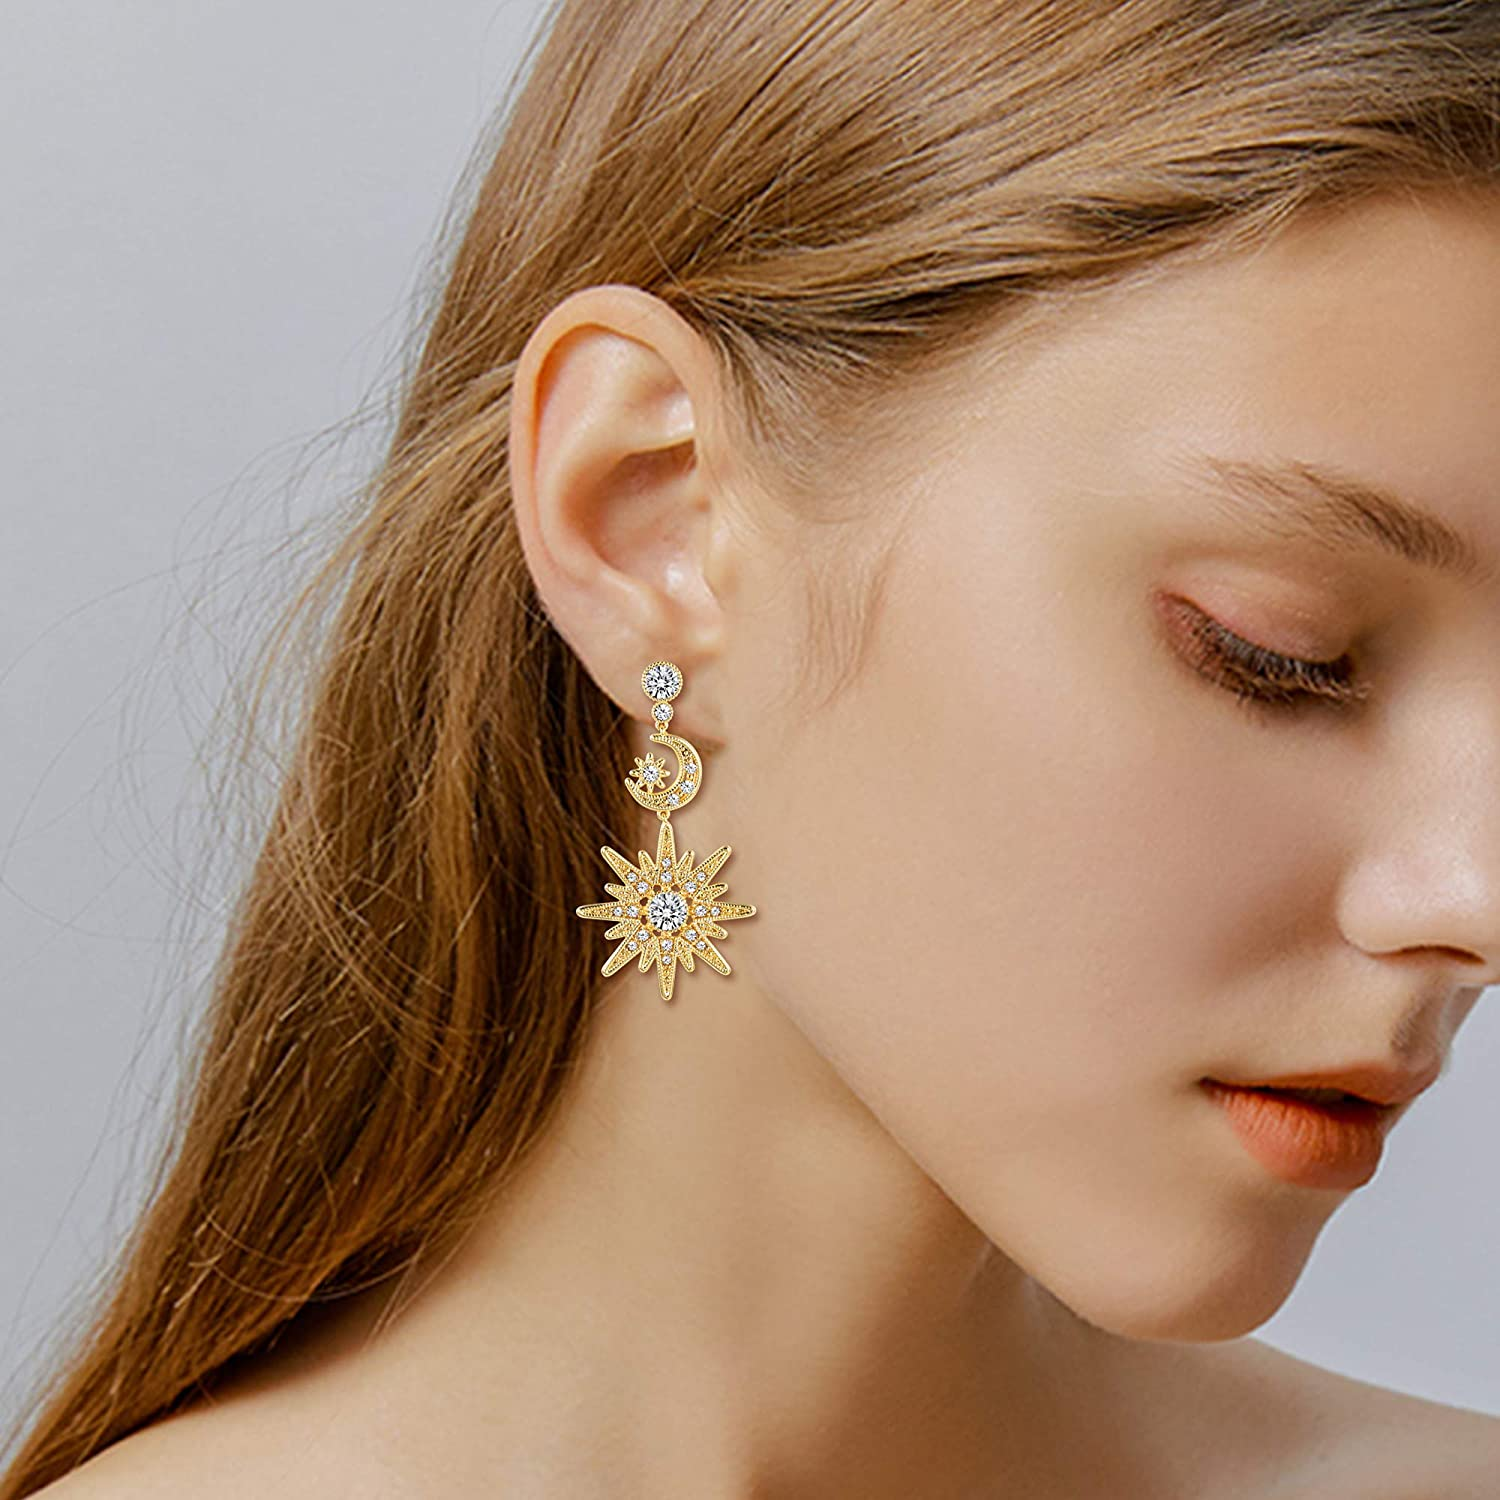 24K gold plated gypsy moon and star earrings with beaded drop embellishments Cosmic Balance